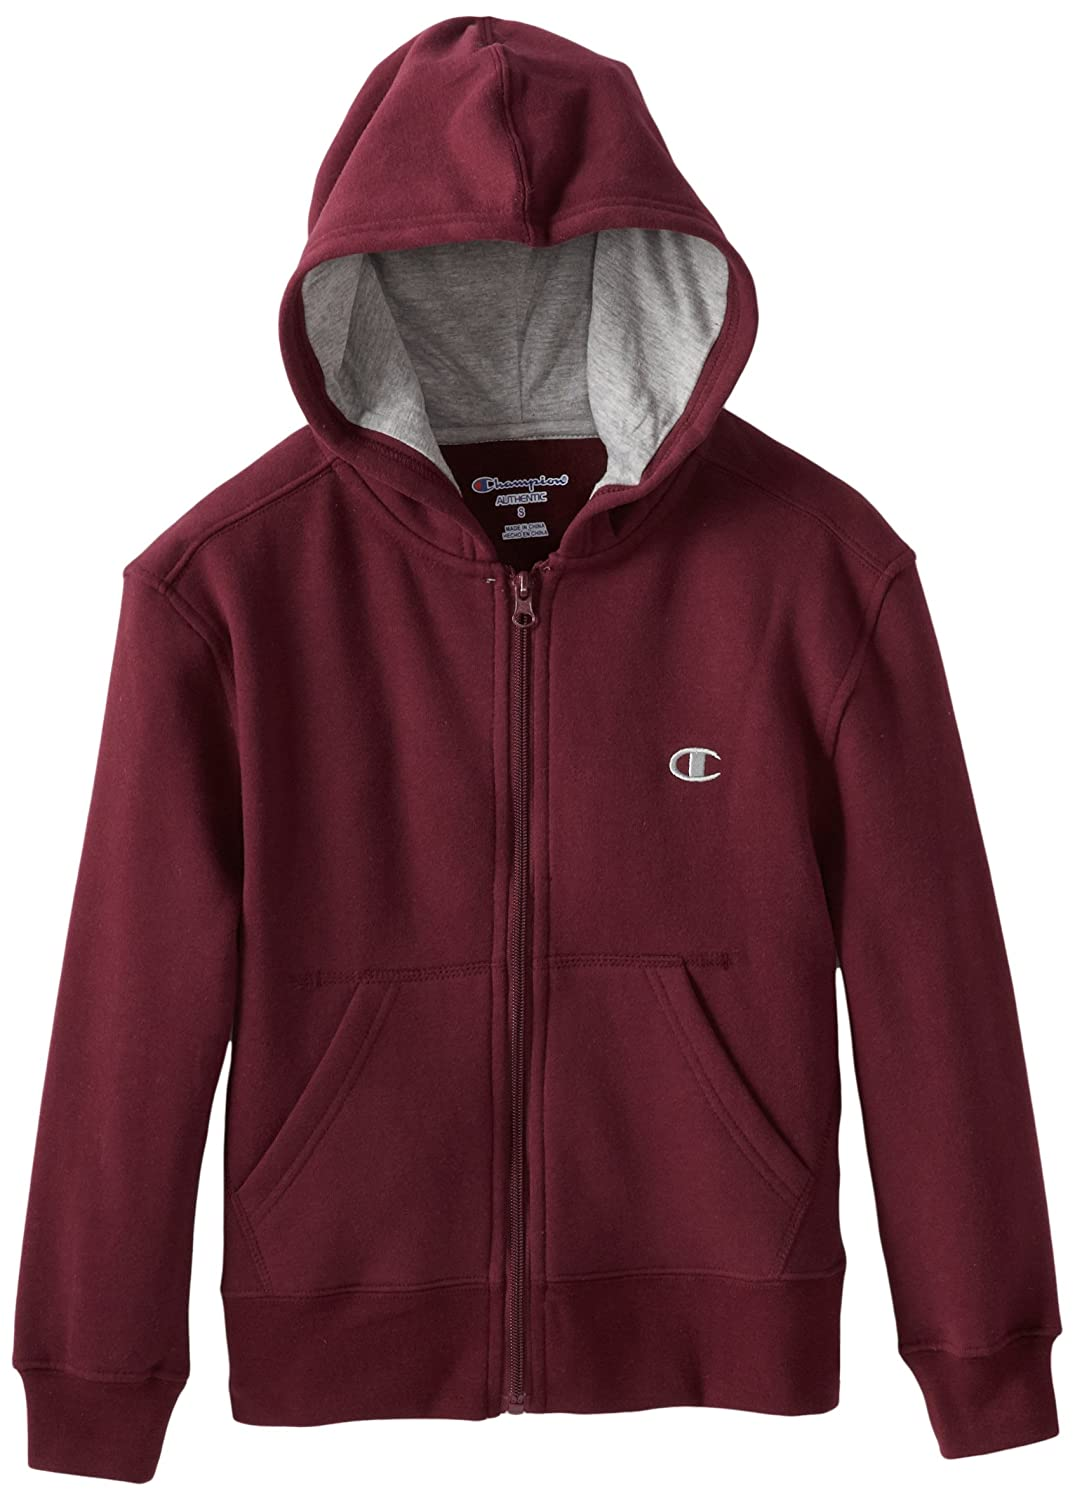 Amazon.com: Champion Big Boys' Zip-Front Hoodie, Oxford Gray Heather,  Small: Athletic Hoodies: Clothing